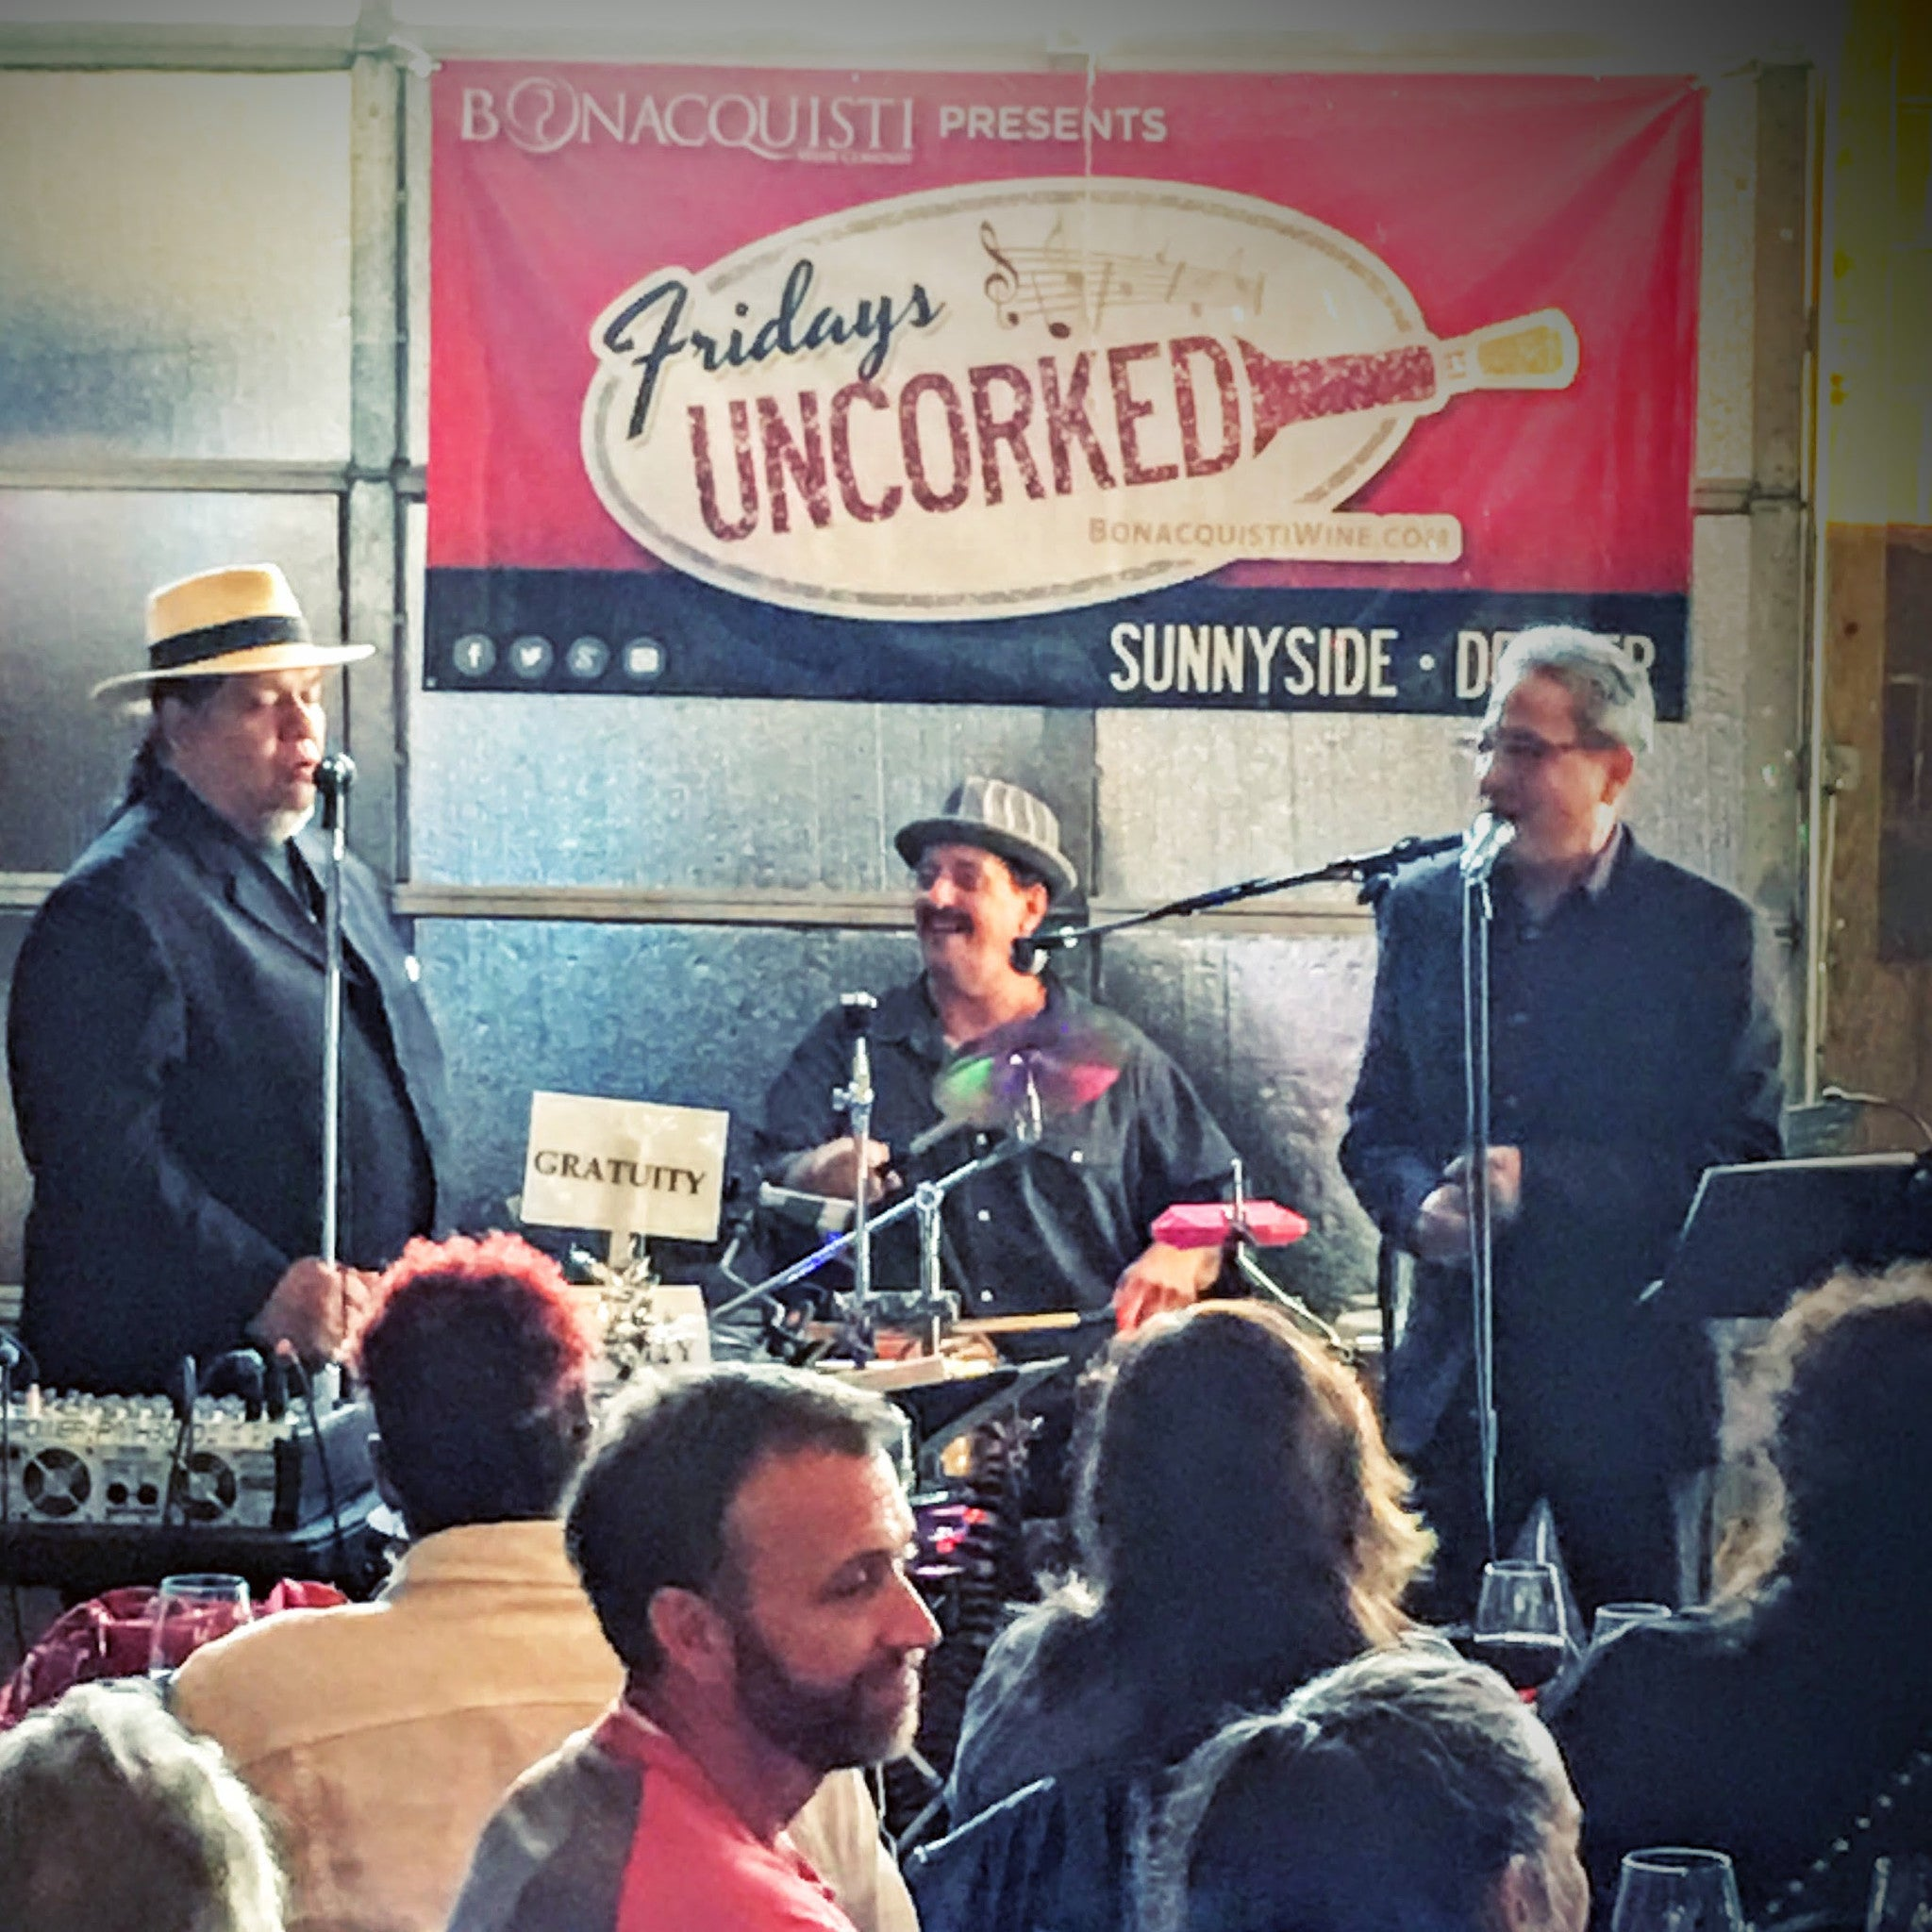 August 26th - Fridays Uncorked featuring Fedora Nights